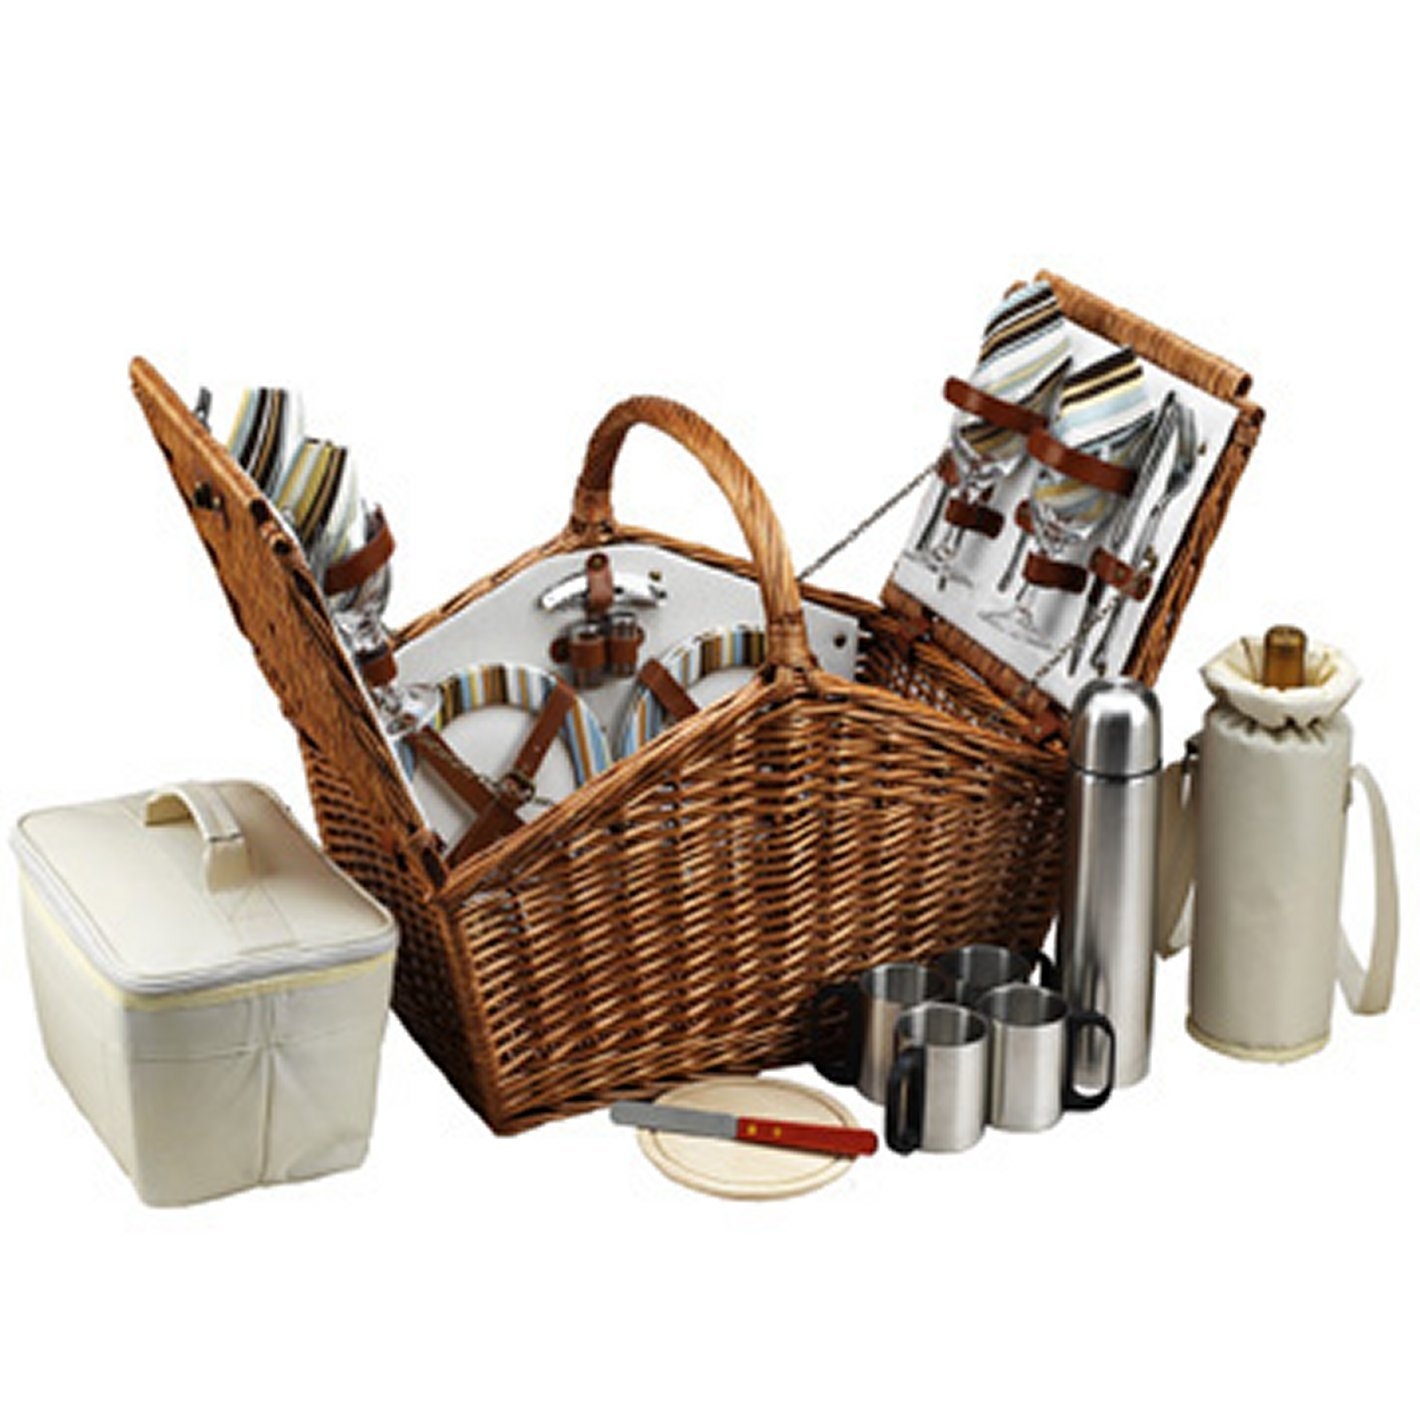 Picnic at Ascot Huntsman Basket for 4 with Coffee Service